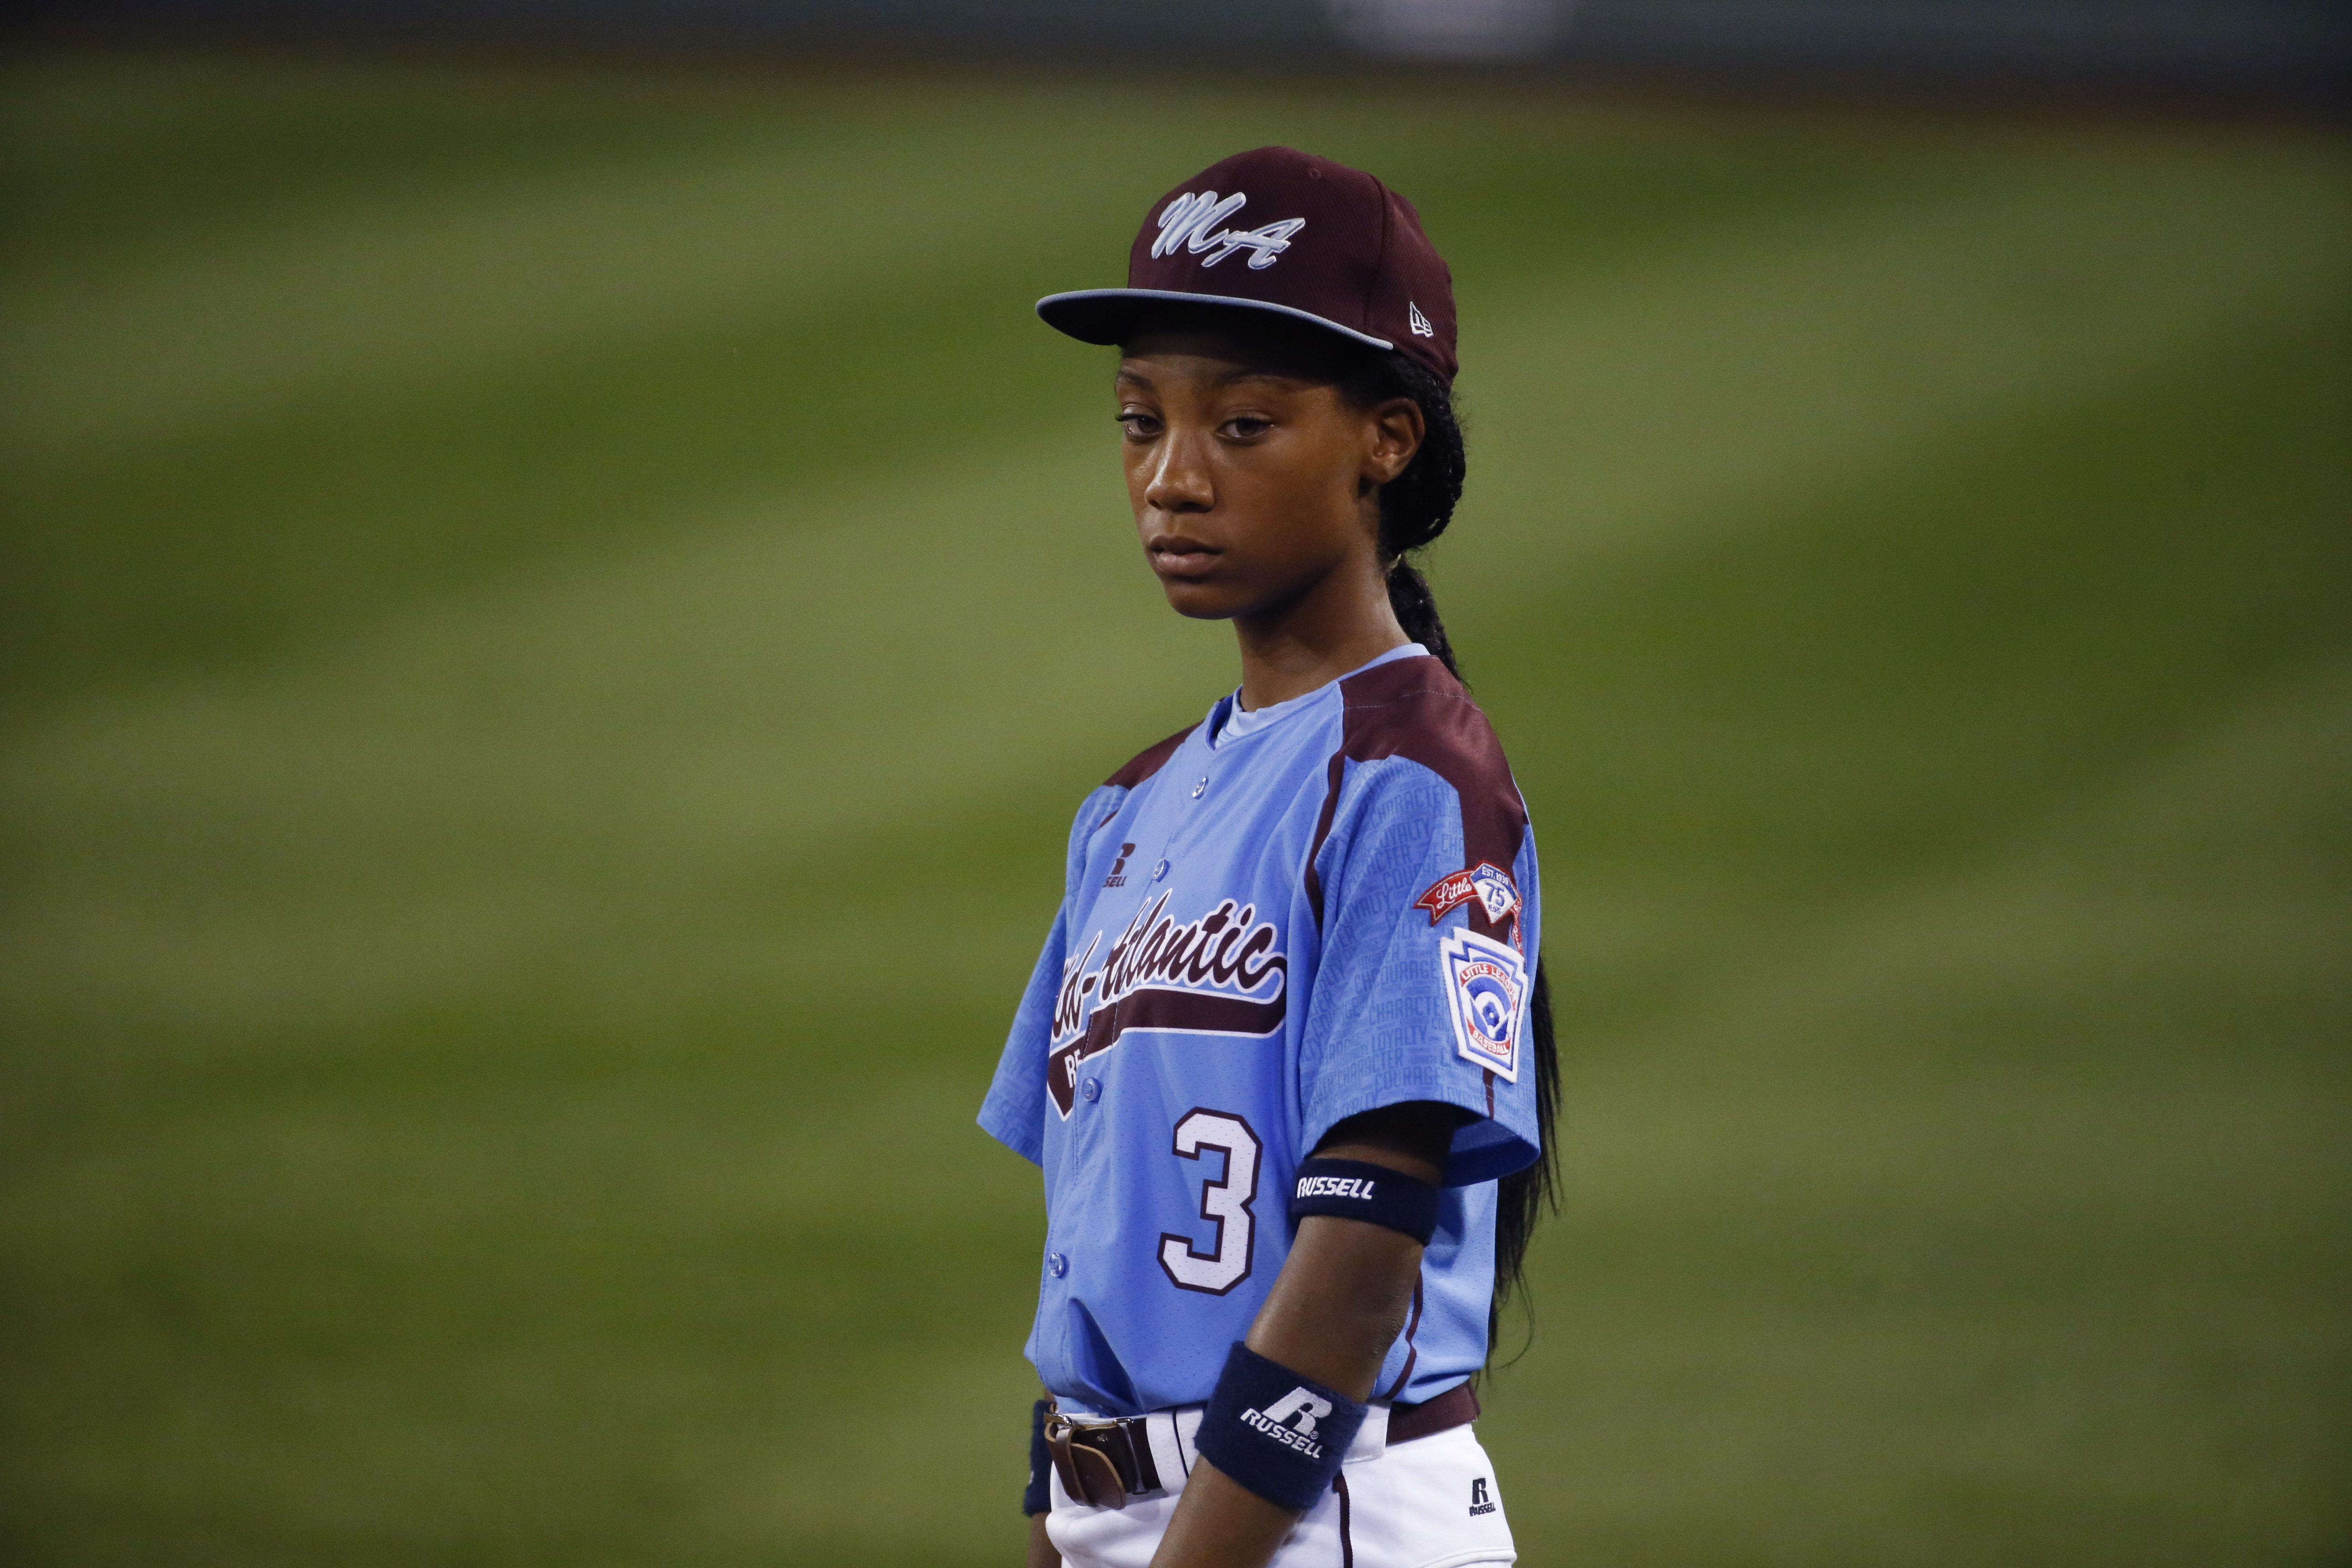 Philadelphia's  Mo'ne Davis pauses during a play review at the second inning of an elimination baseball game against Chicago at the Little League World Series tournament in South Williamsport, Pa., on Aug. 21, 2014. Chicago won 6-5